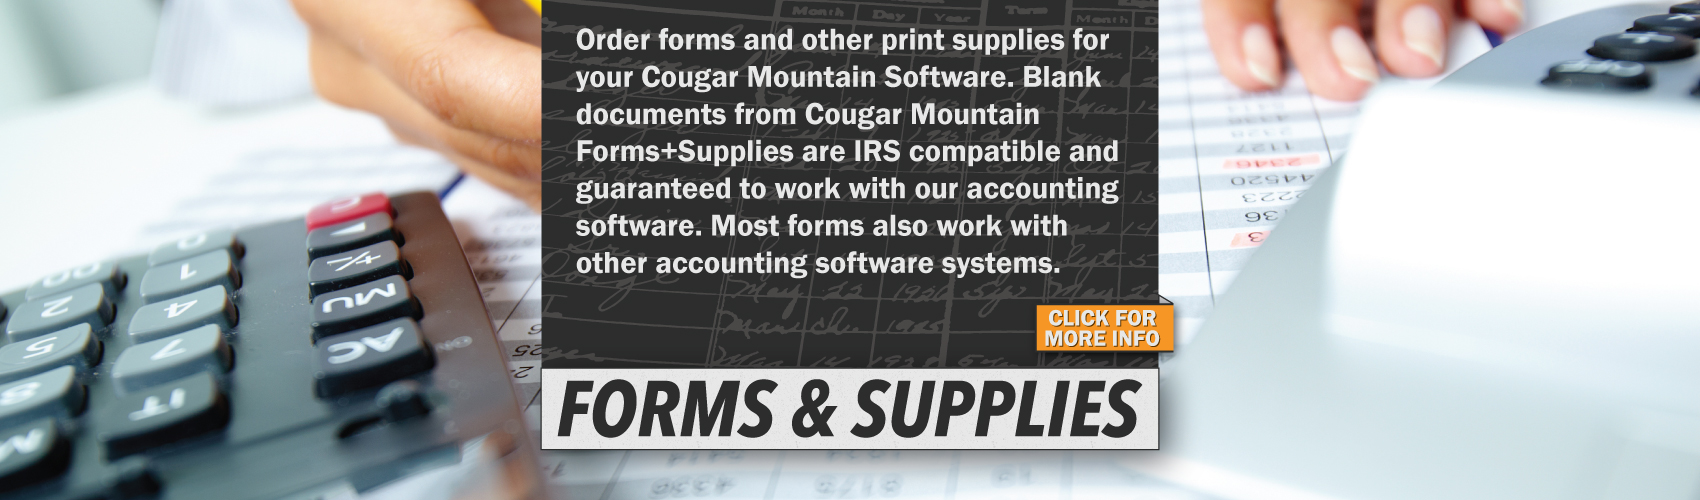 Forms & Supplies